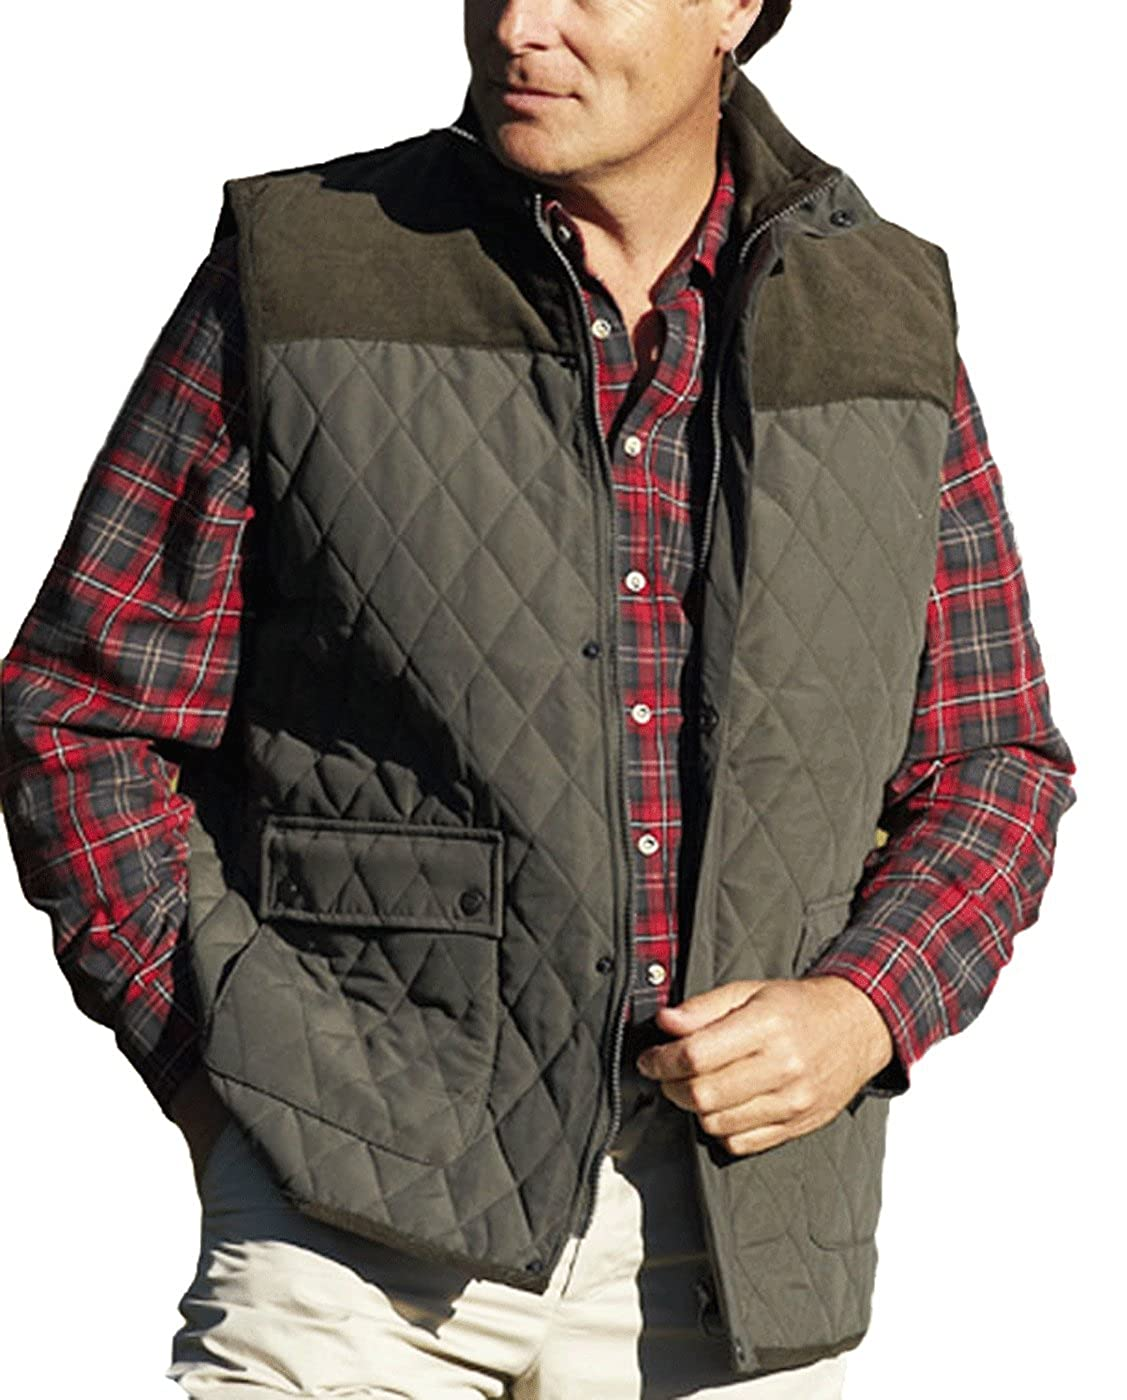 New Champion Country Estate gilet outdoor bodywarmer Diamond Quilted waistcoat Outerwear jacket fishing hunting shooting walking farming Olive XXL